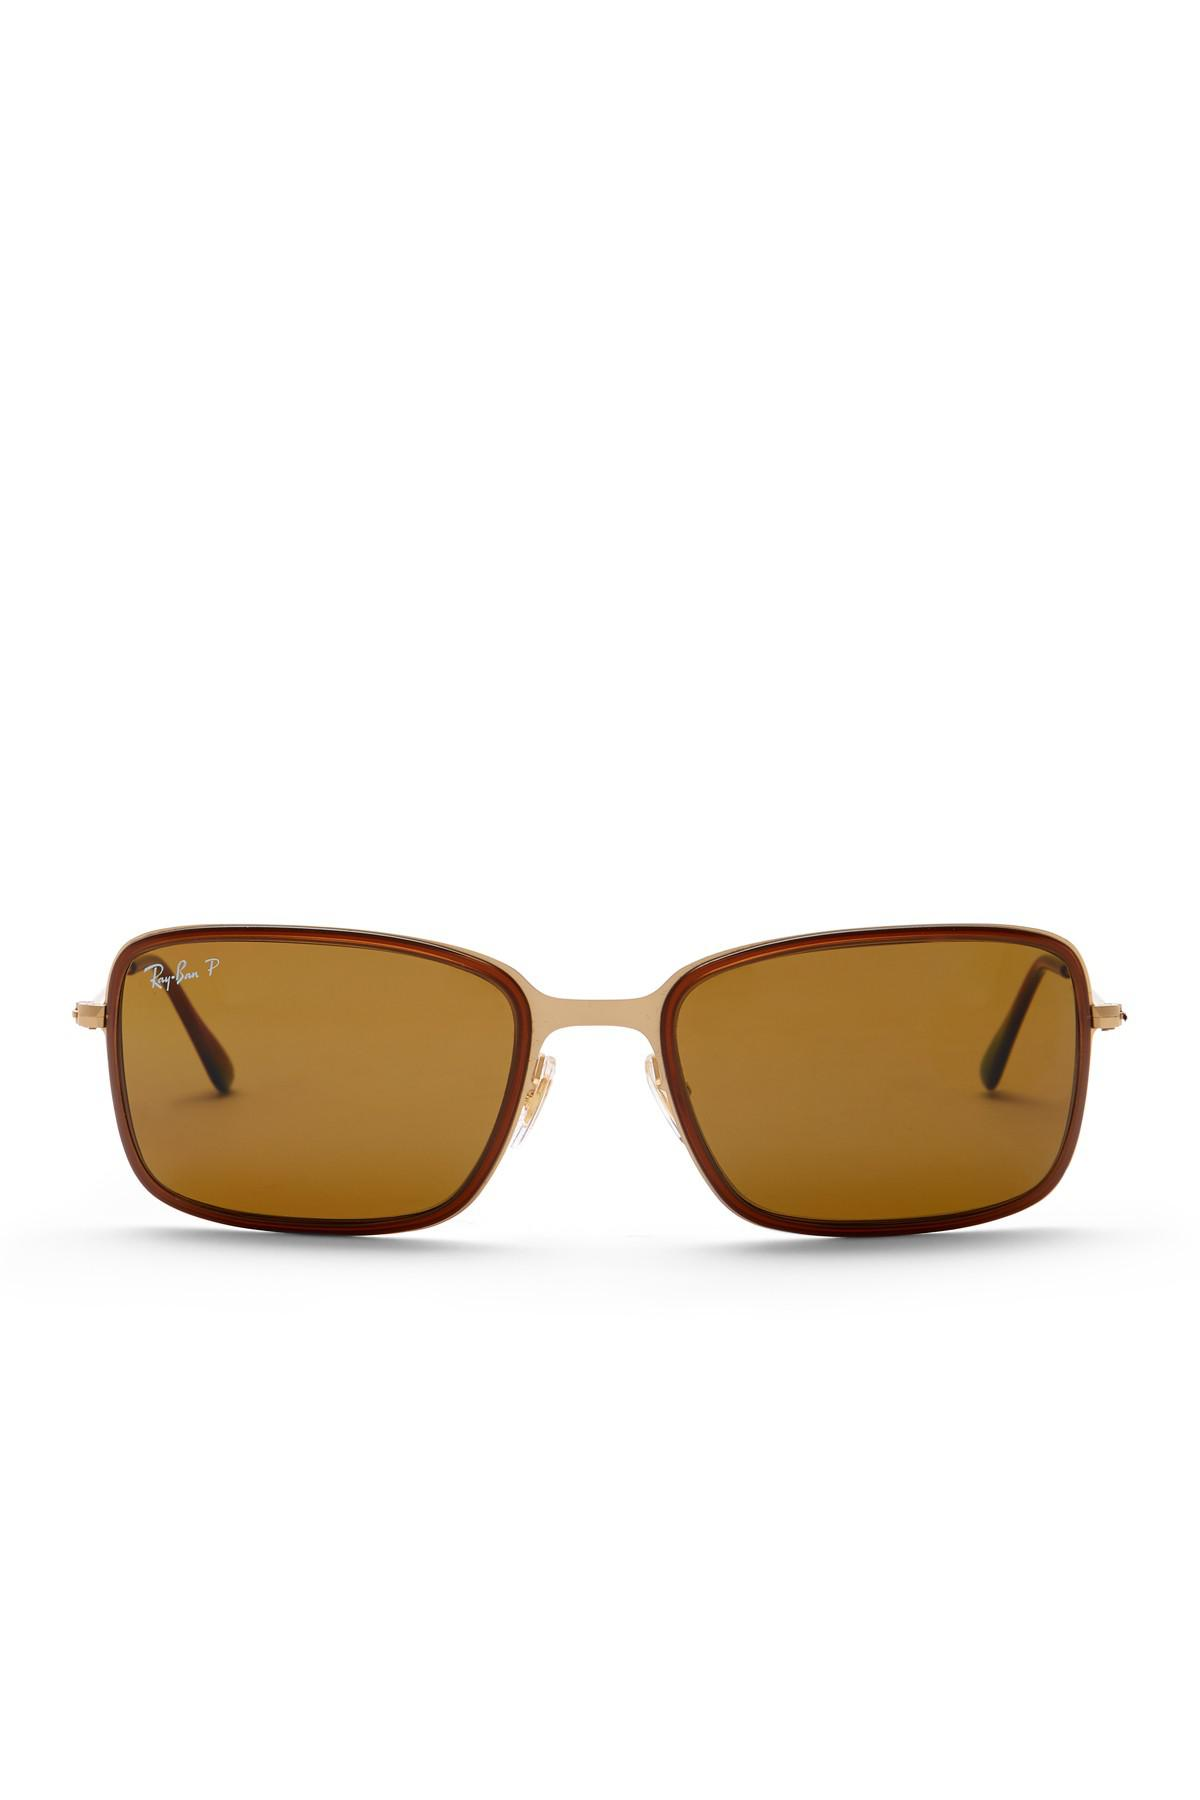 881a687412 Lyst - Ray-Ban Pilot 50mm Polarized Sunglasses in Metallic for Men